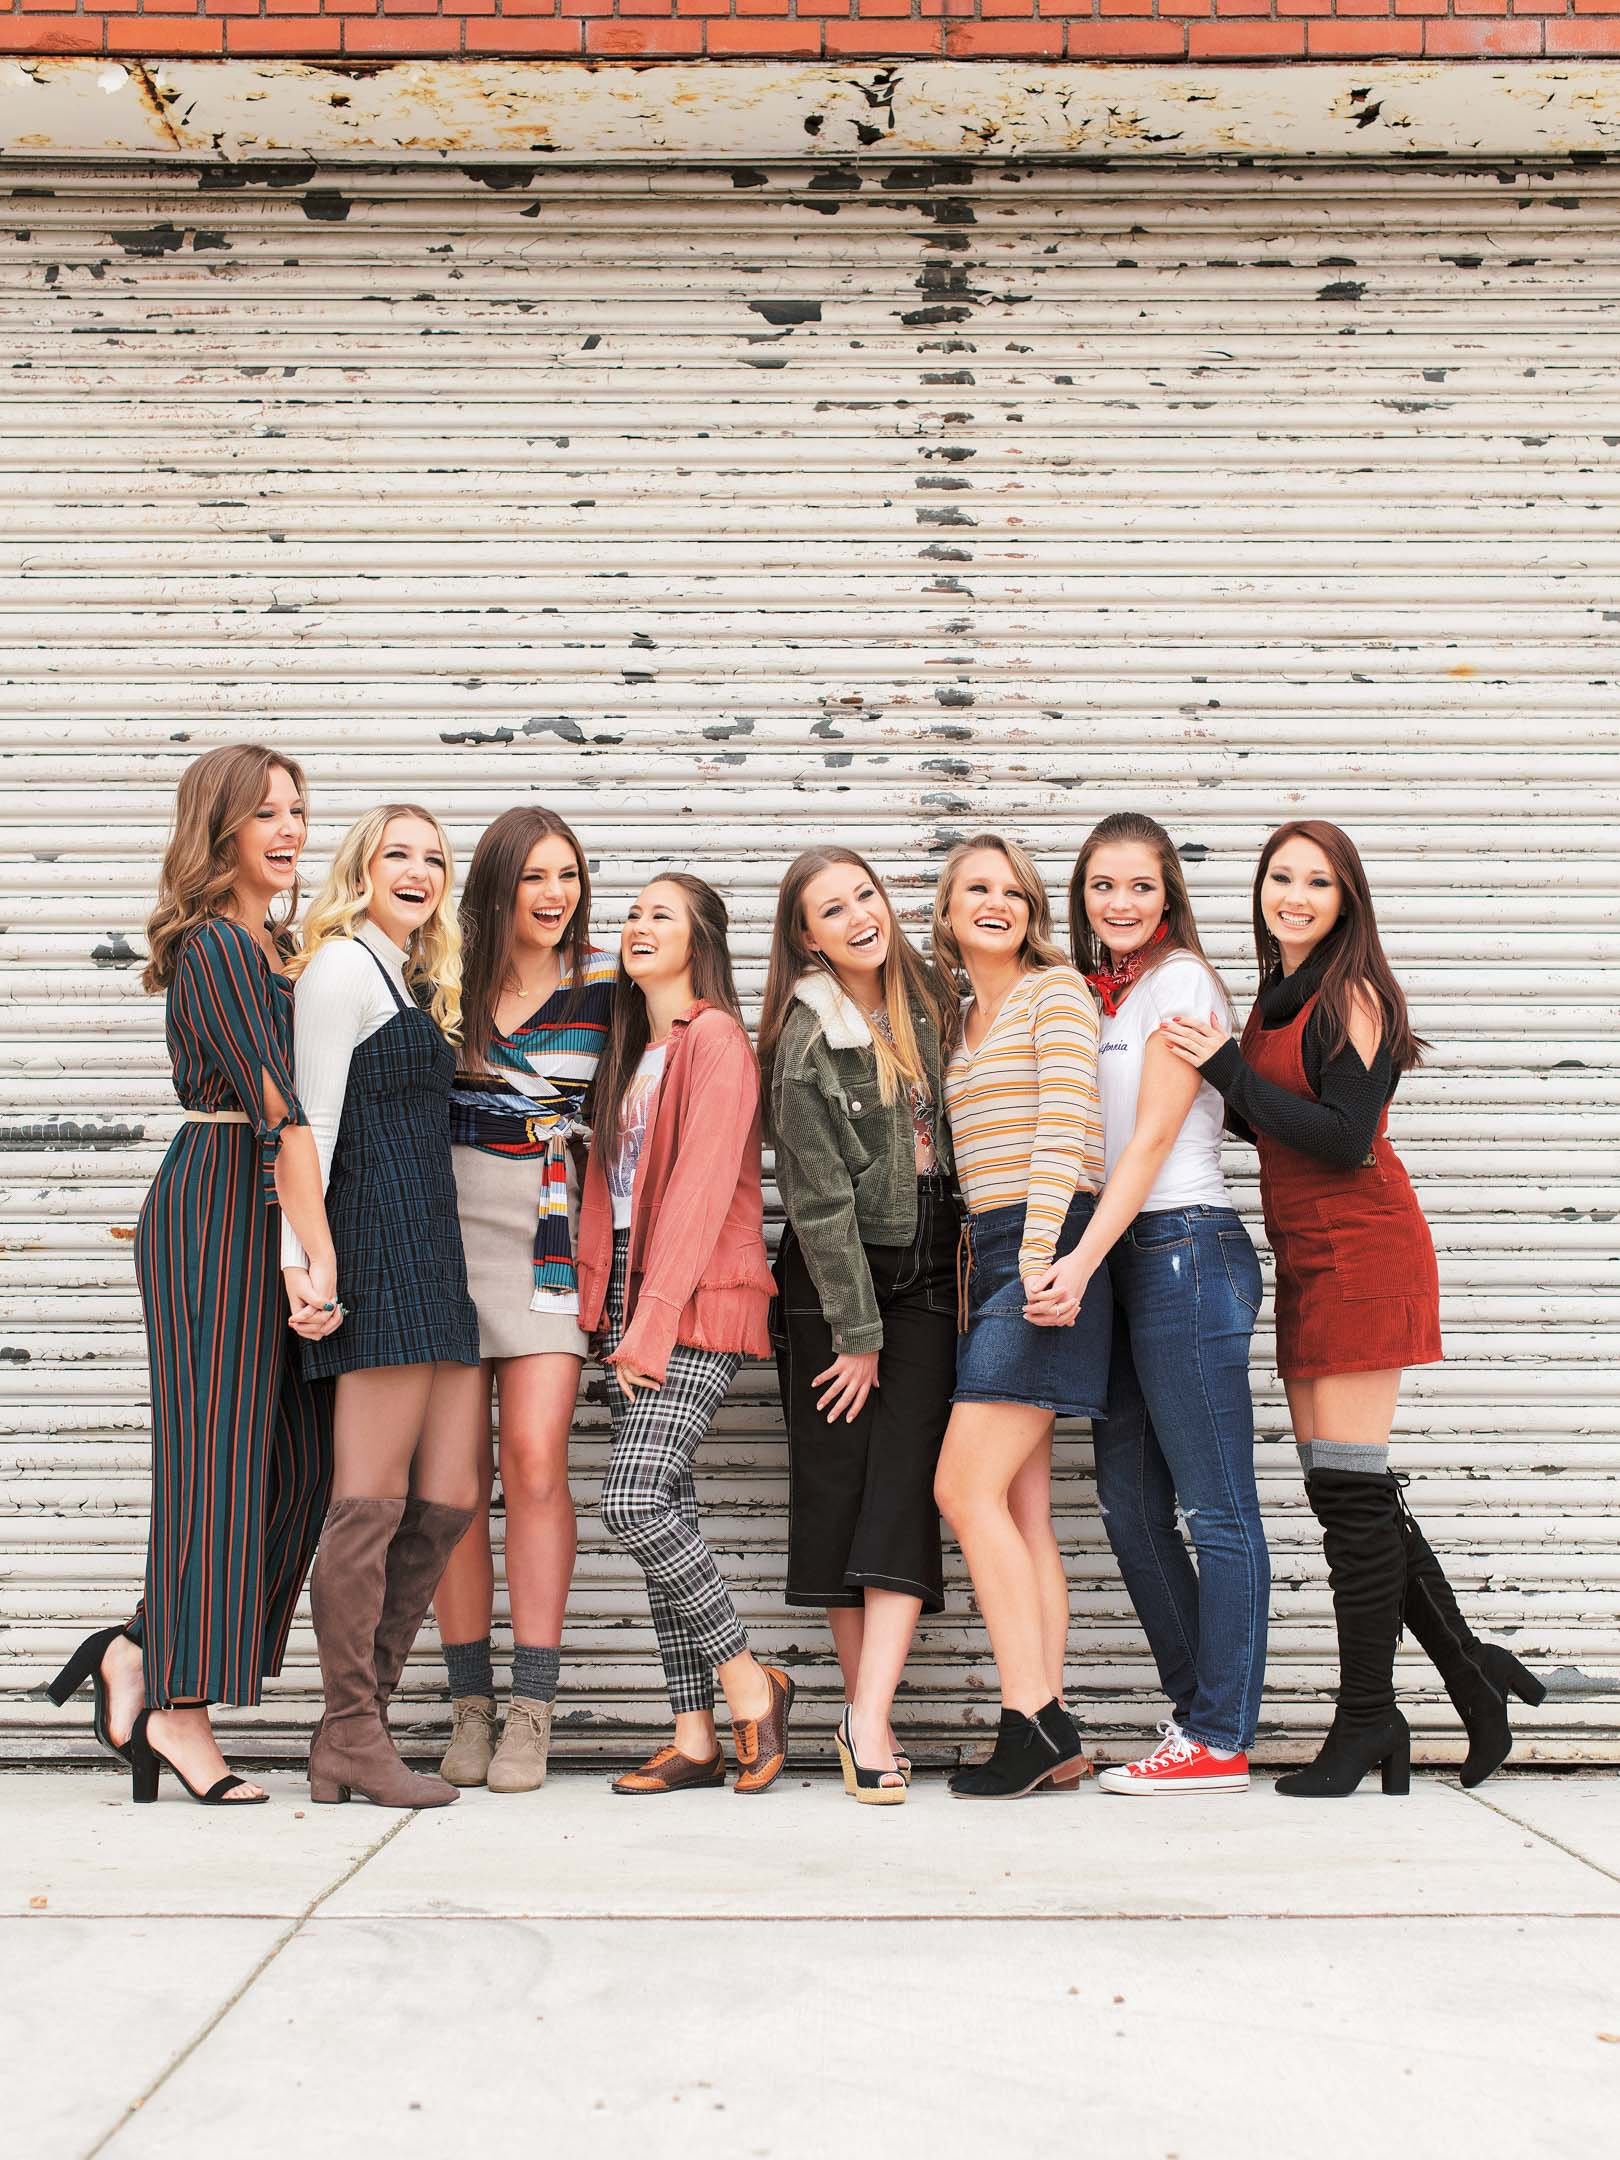 McCartneys Models - Class of 2019